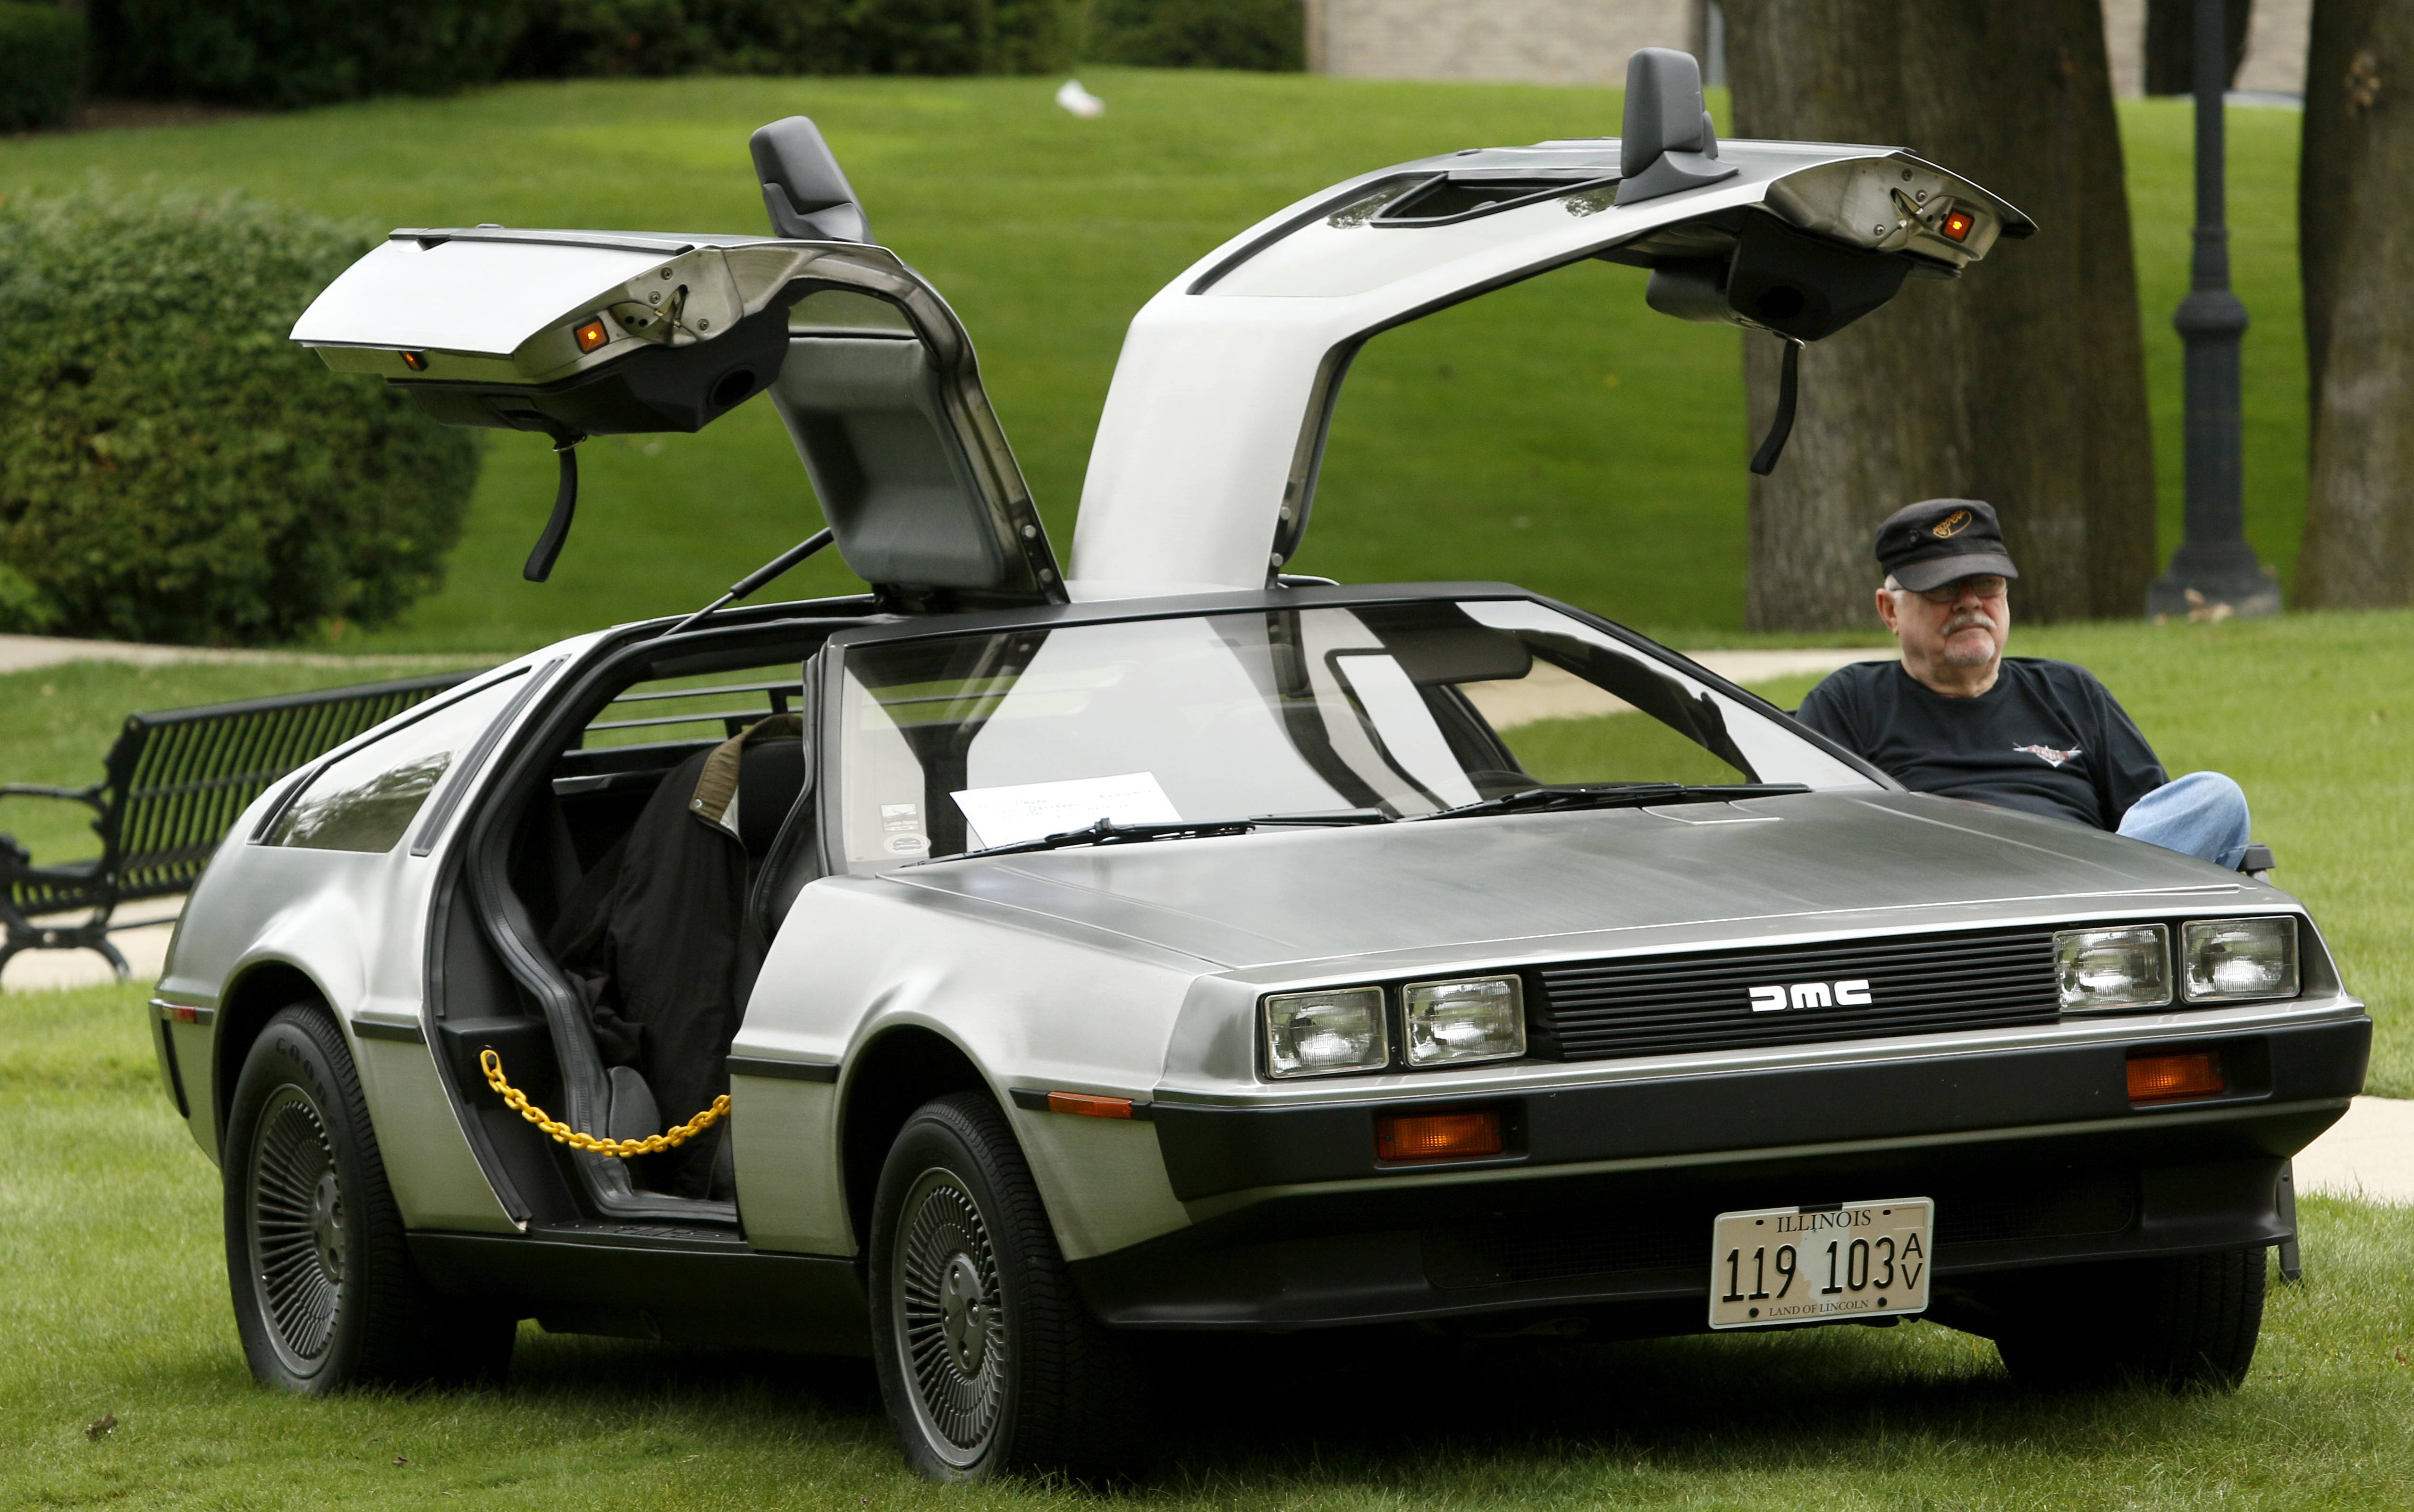 Raph Sandstrom of Elk Grove relaxes Sunday next to his 1981 DeLorean DMC-12 at a car show during the last day of Itasca Fest.